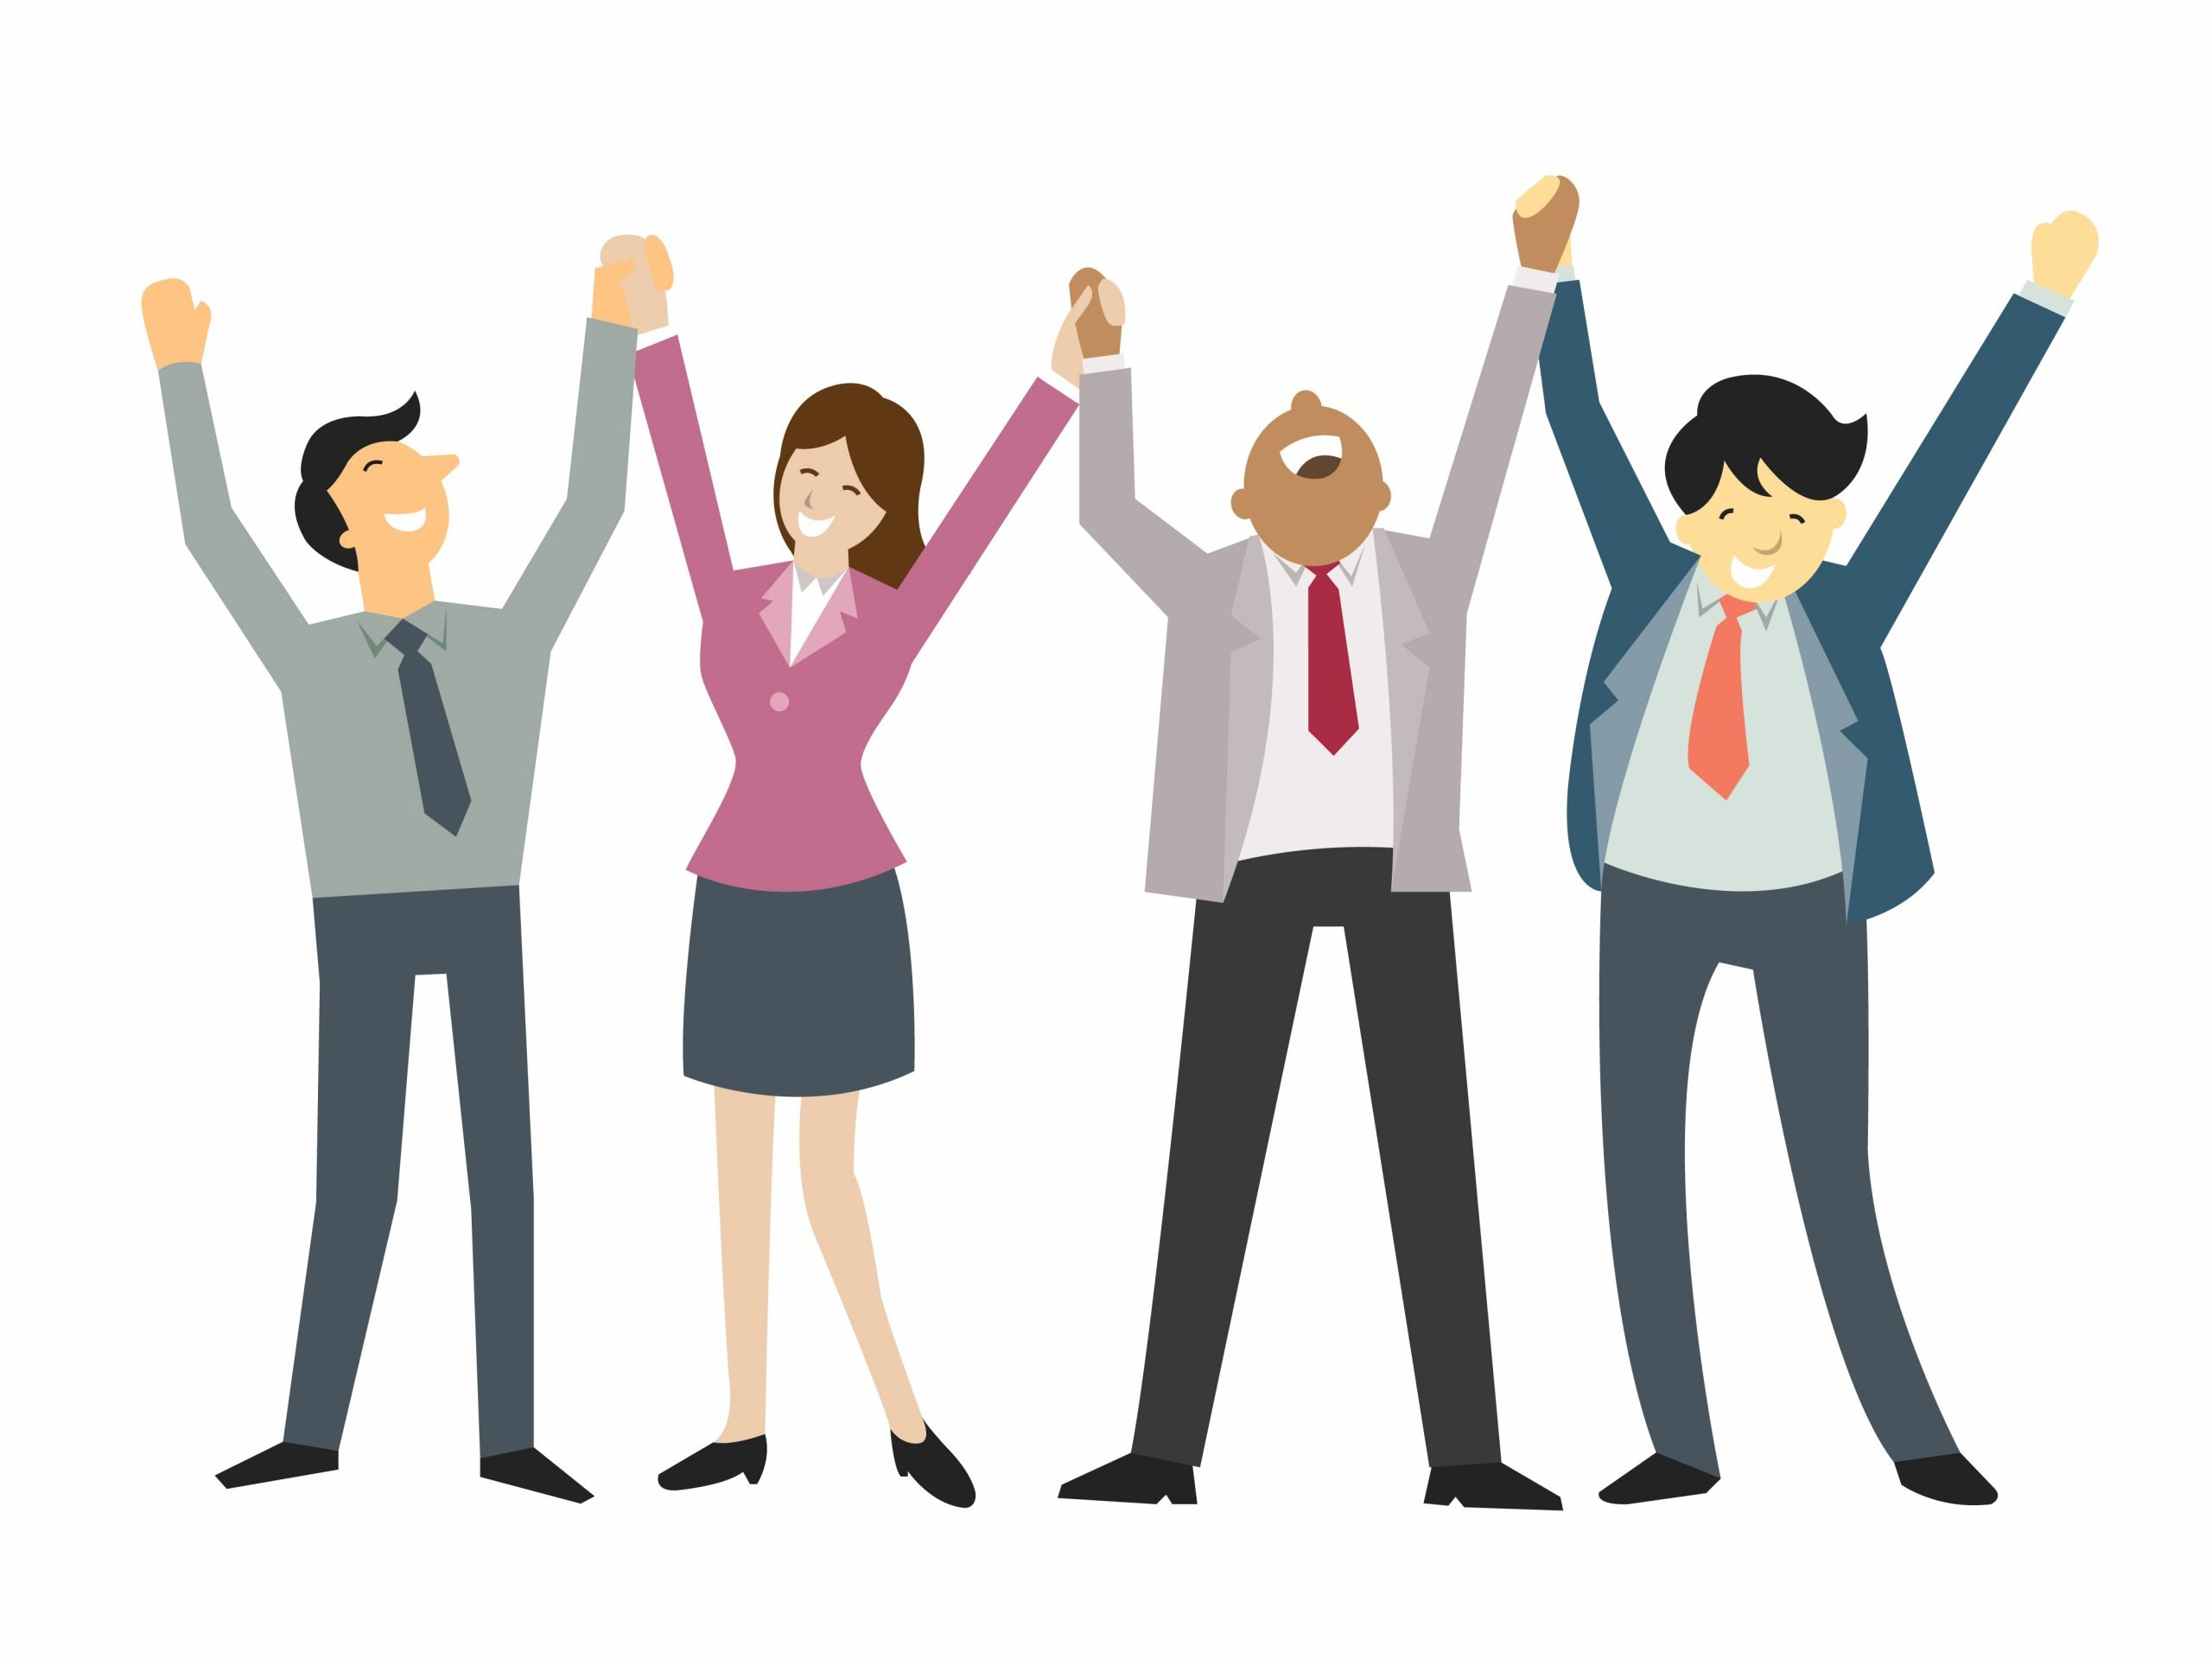 Happy and successful business people, holding hand and raising hands, business concept in teamwork and corporation.